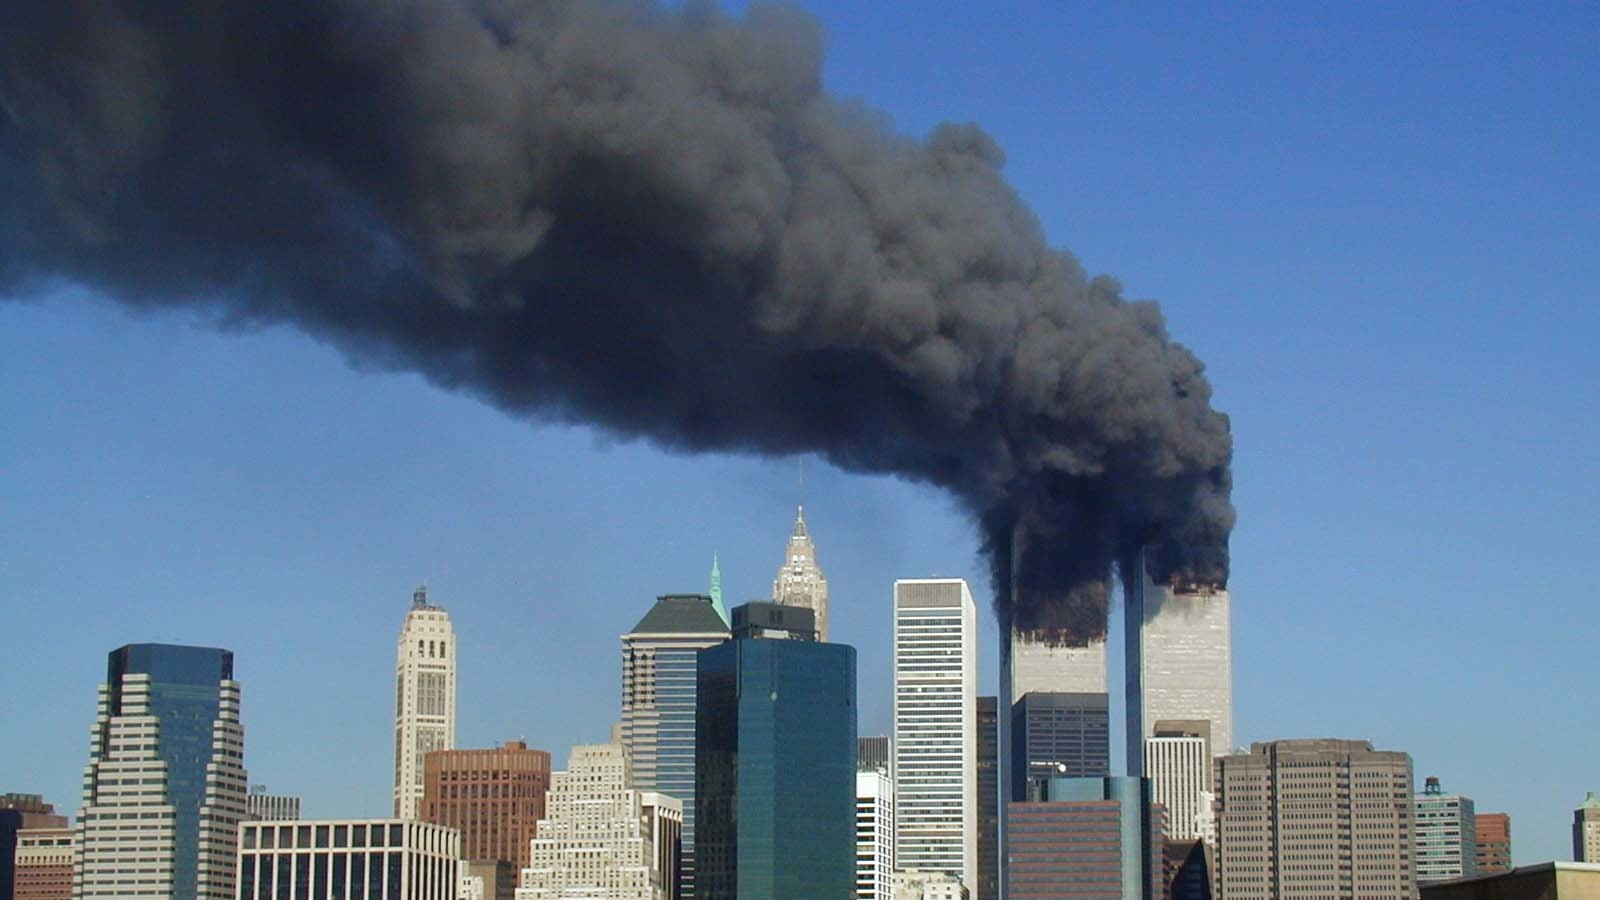 The Senate Just Approved a Bill That Would Let Families of 9/11 Victims Sue Saudi Arabia